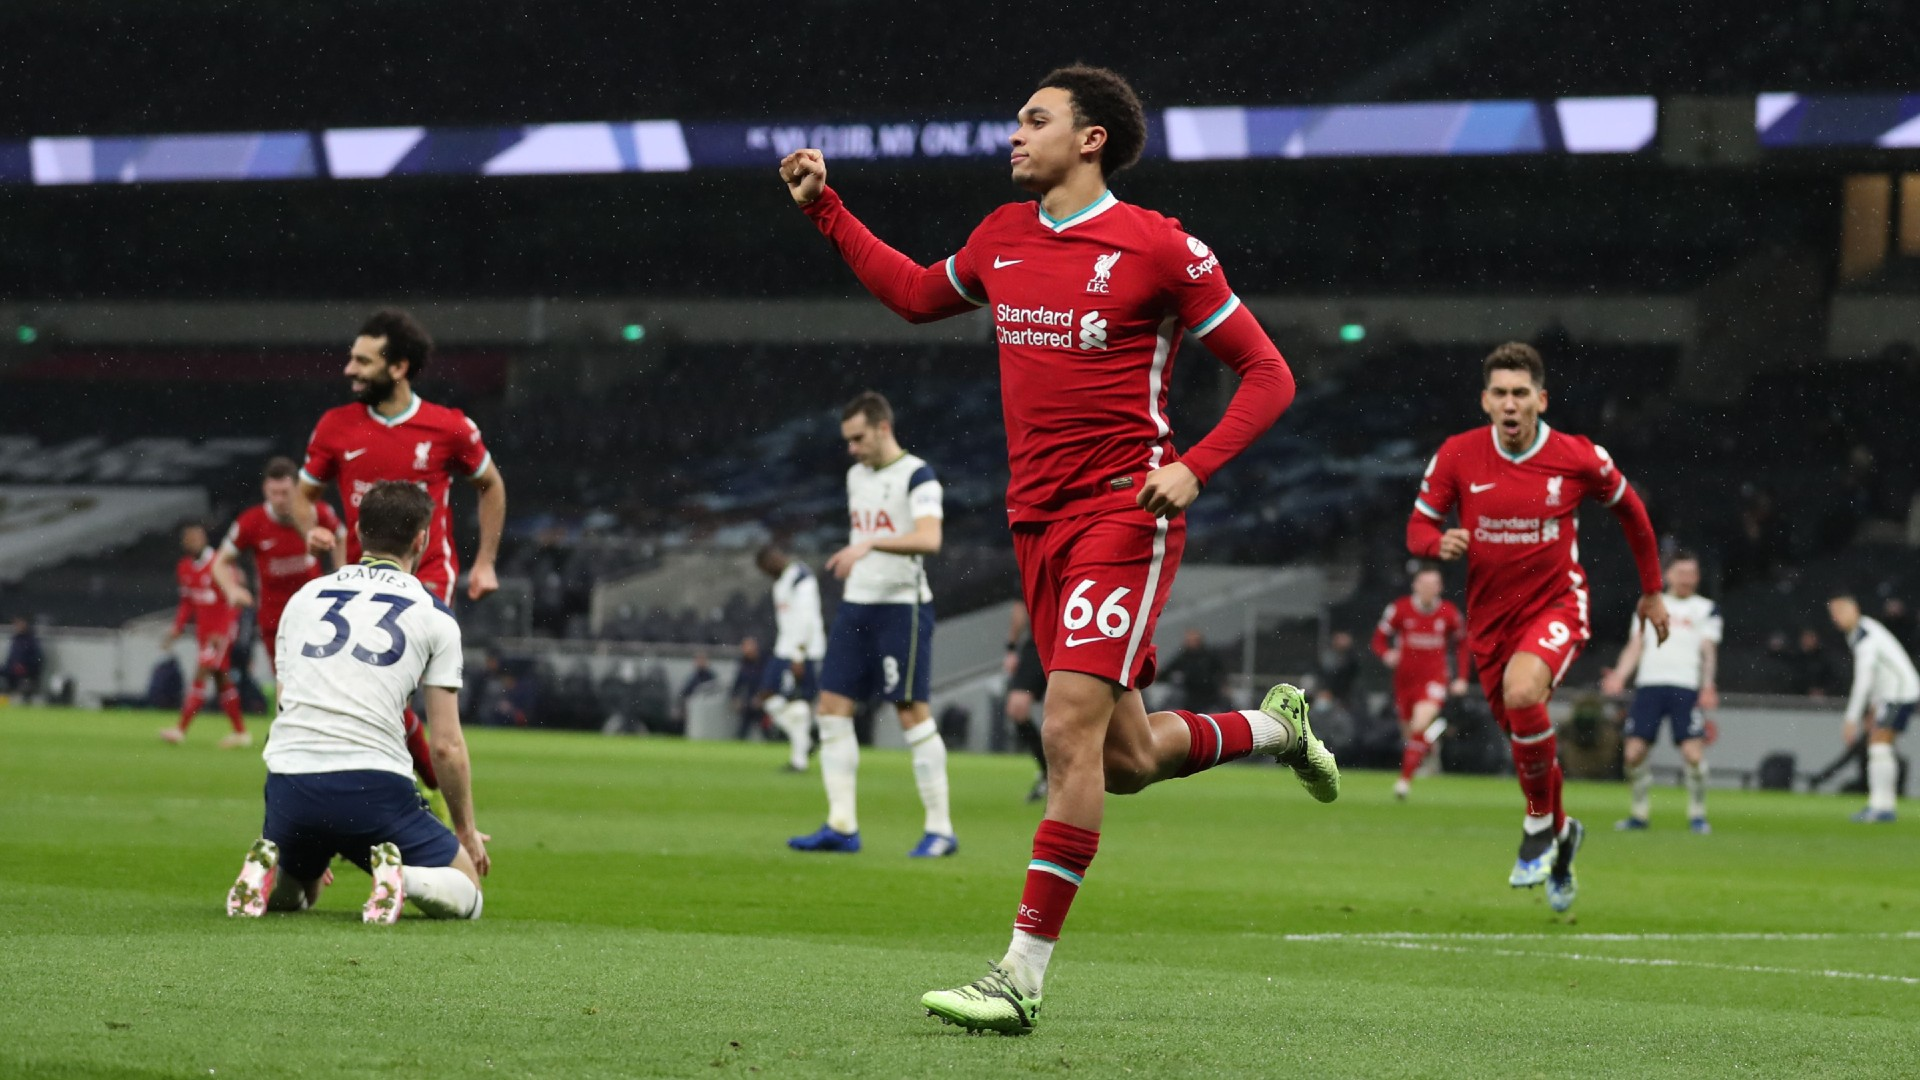 'Needed and deserved' - Alexander-Arnold believes Liverpool 'executed perfectly' against Tottenham